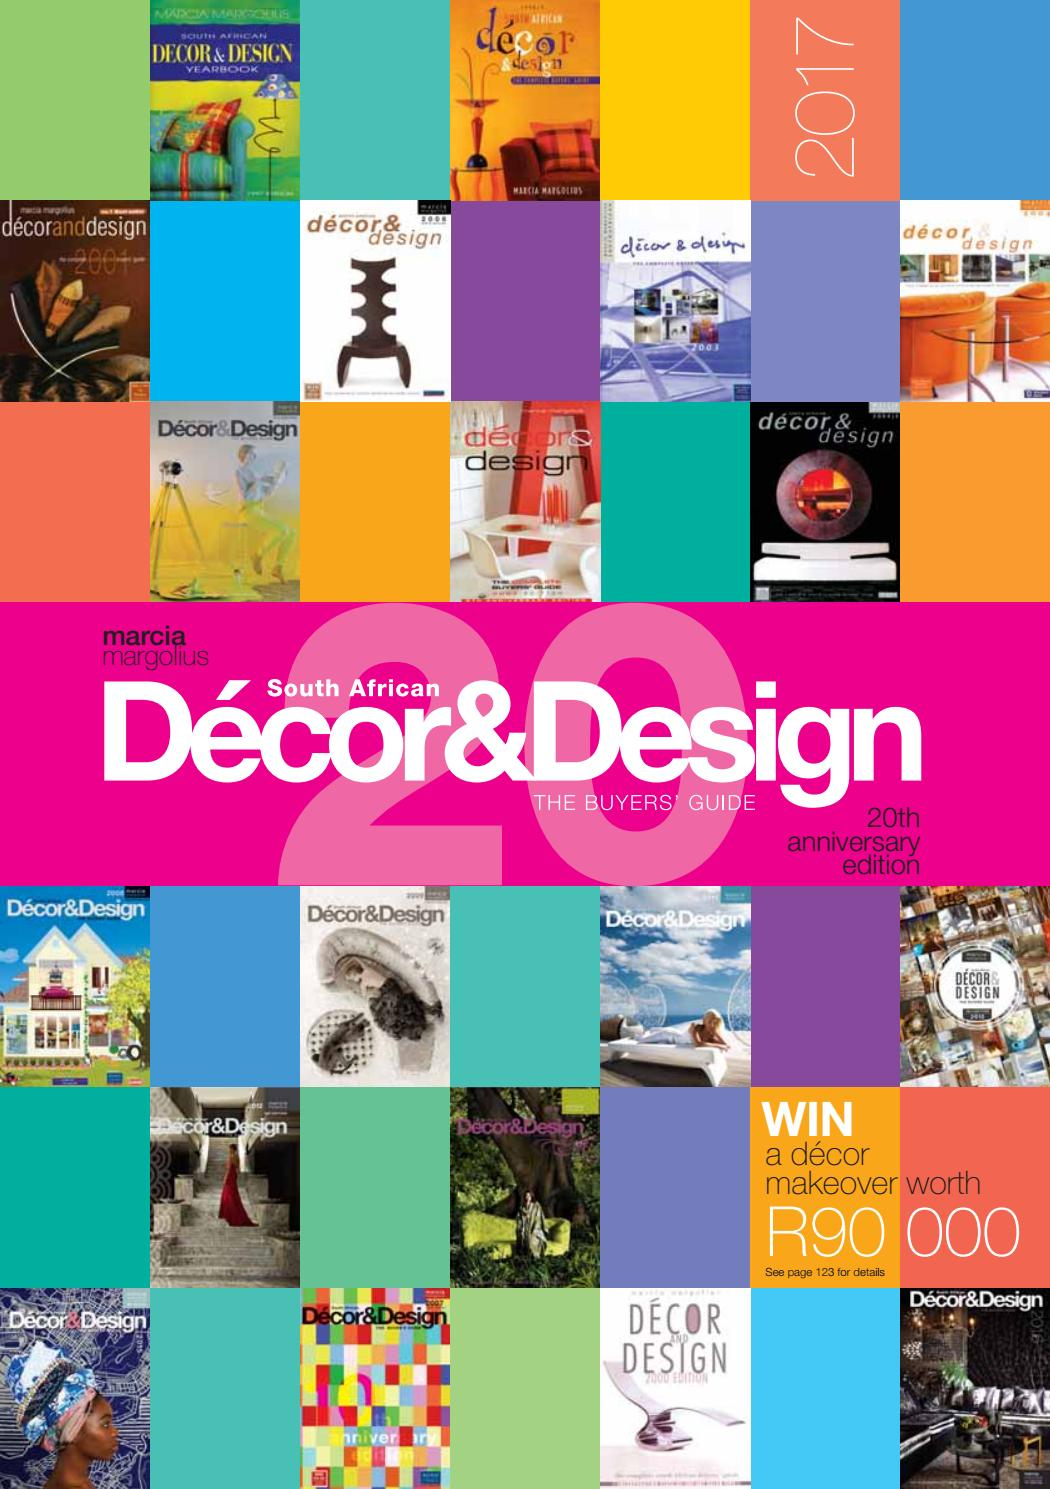 Siesta ans capricorn open coil an an beds - The Sa Decor Design Buyers Guide 20th Edition By Sa Decor Design Issuu